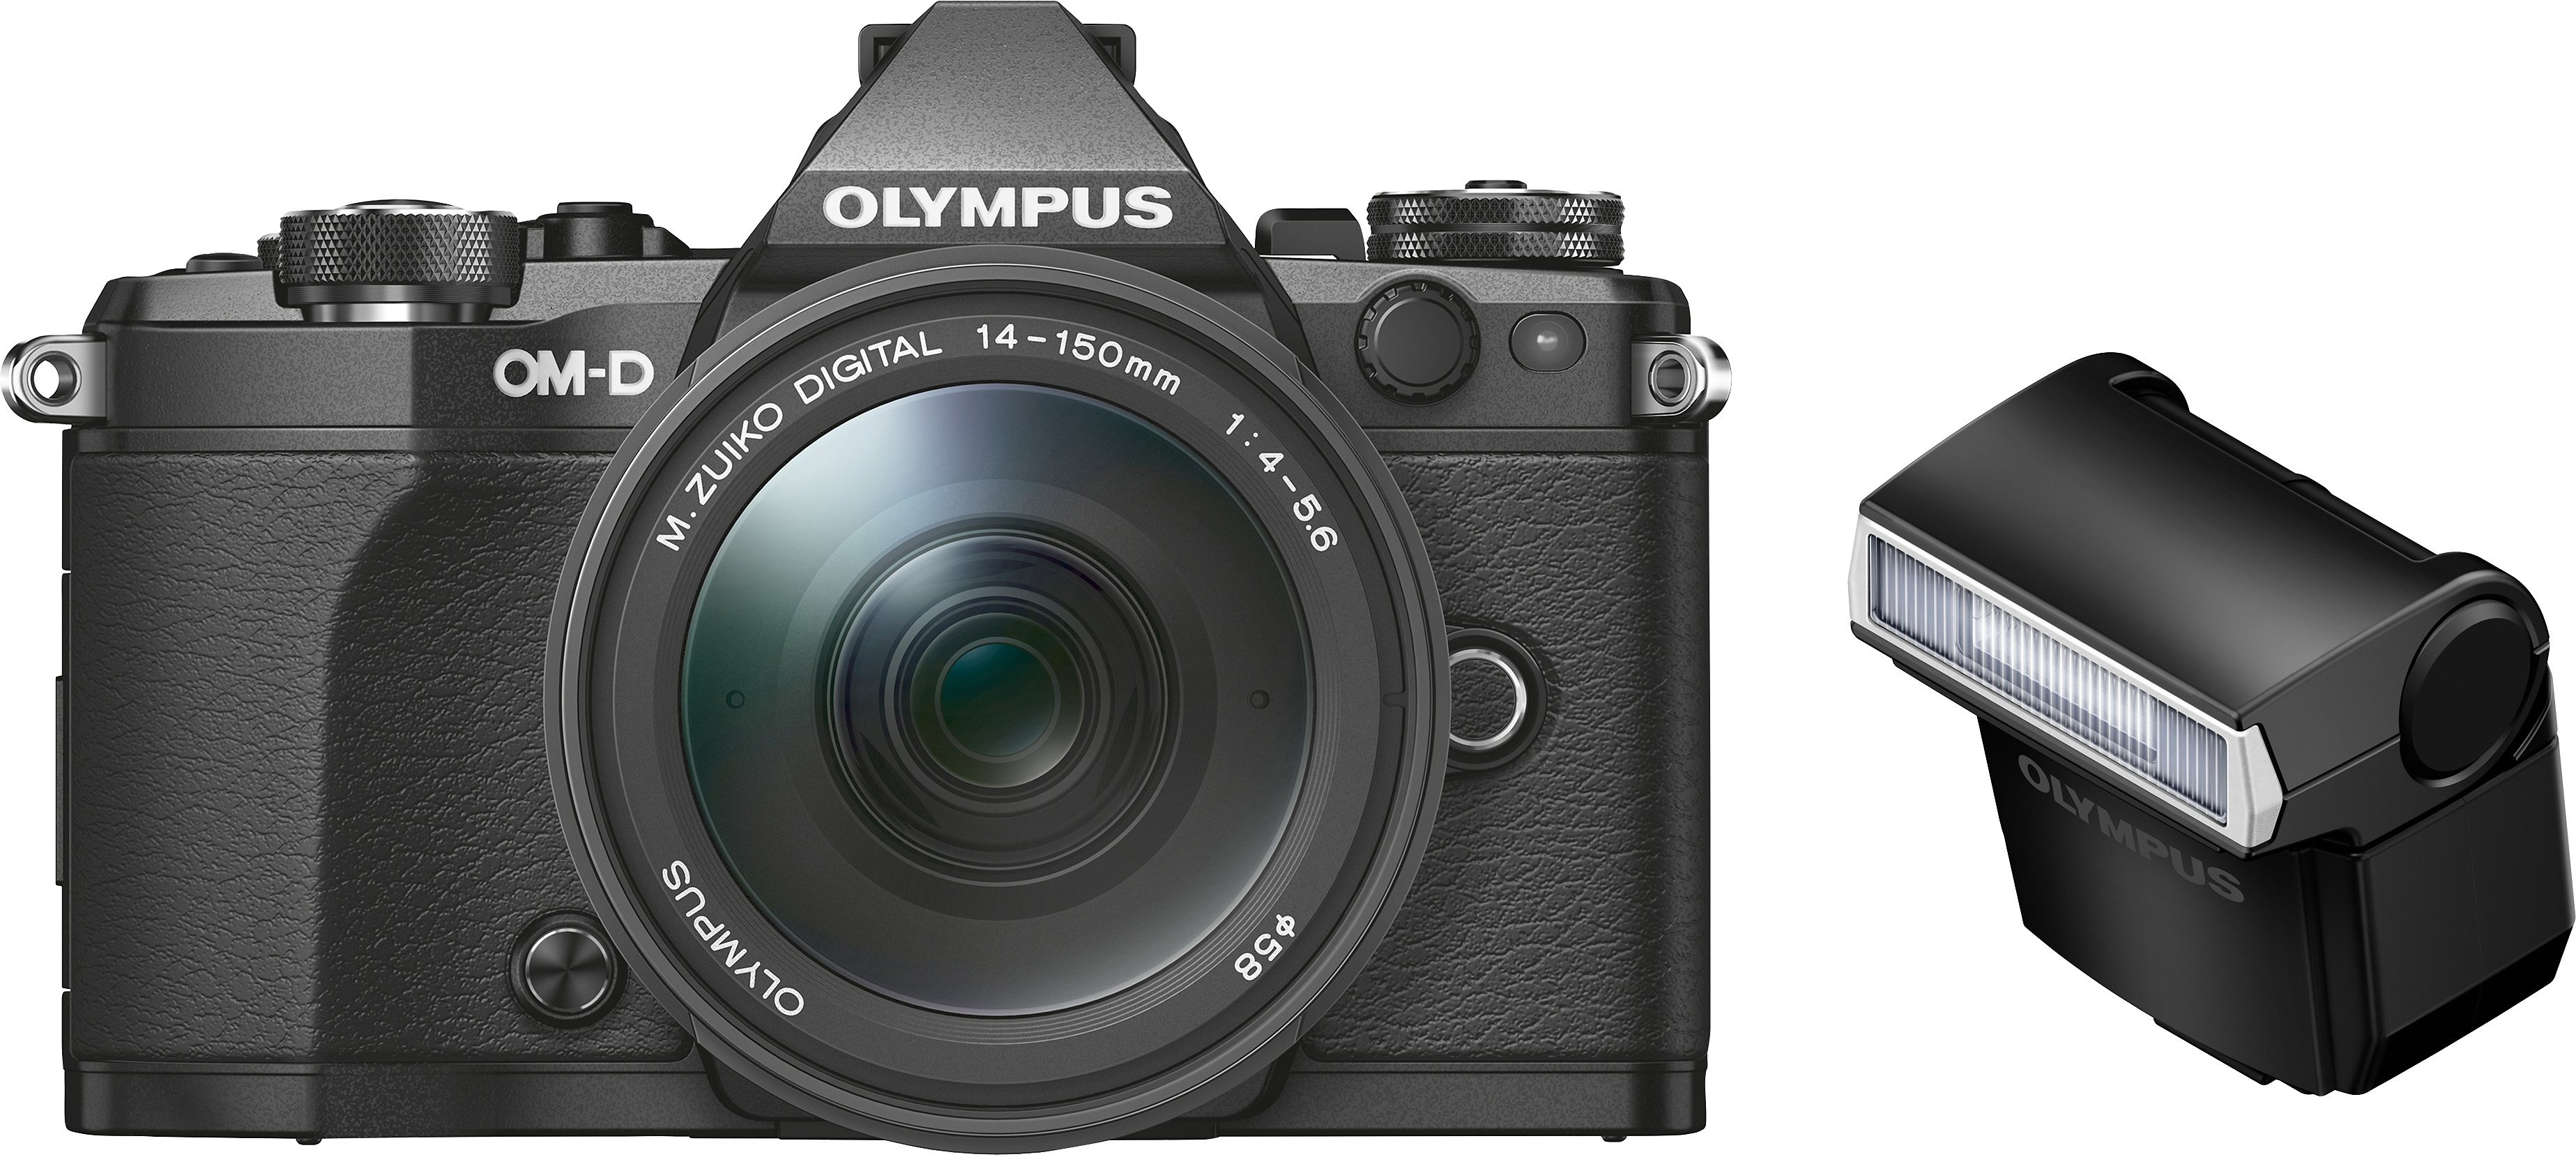 OM-D E-M5 Mark II Kit System Kamera, M.ZUIKO DIGITAL ED 14-150mm 1:4.0-5.6 II Zoom